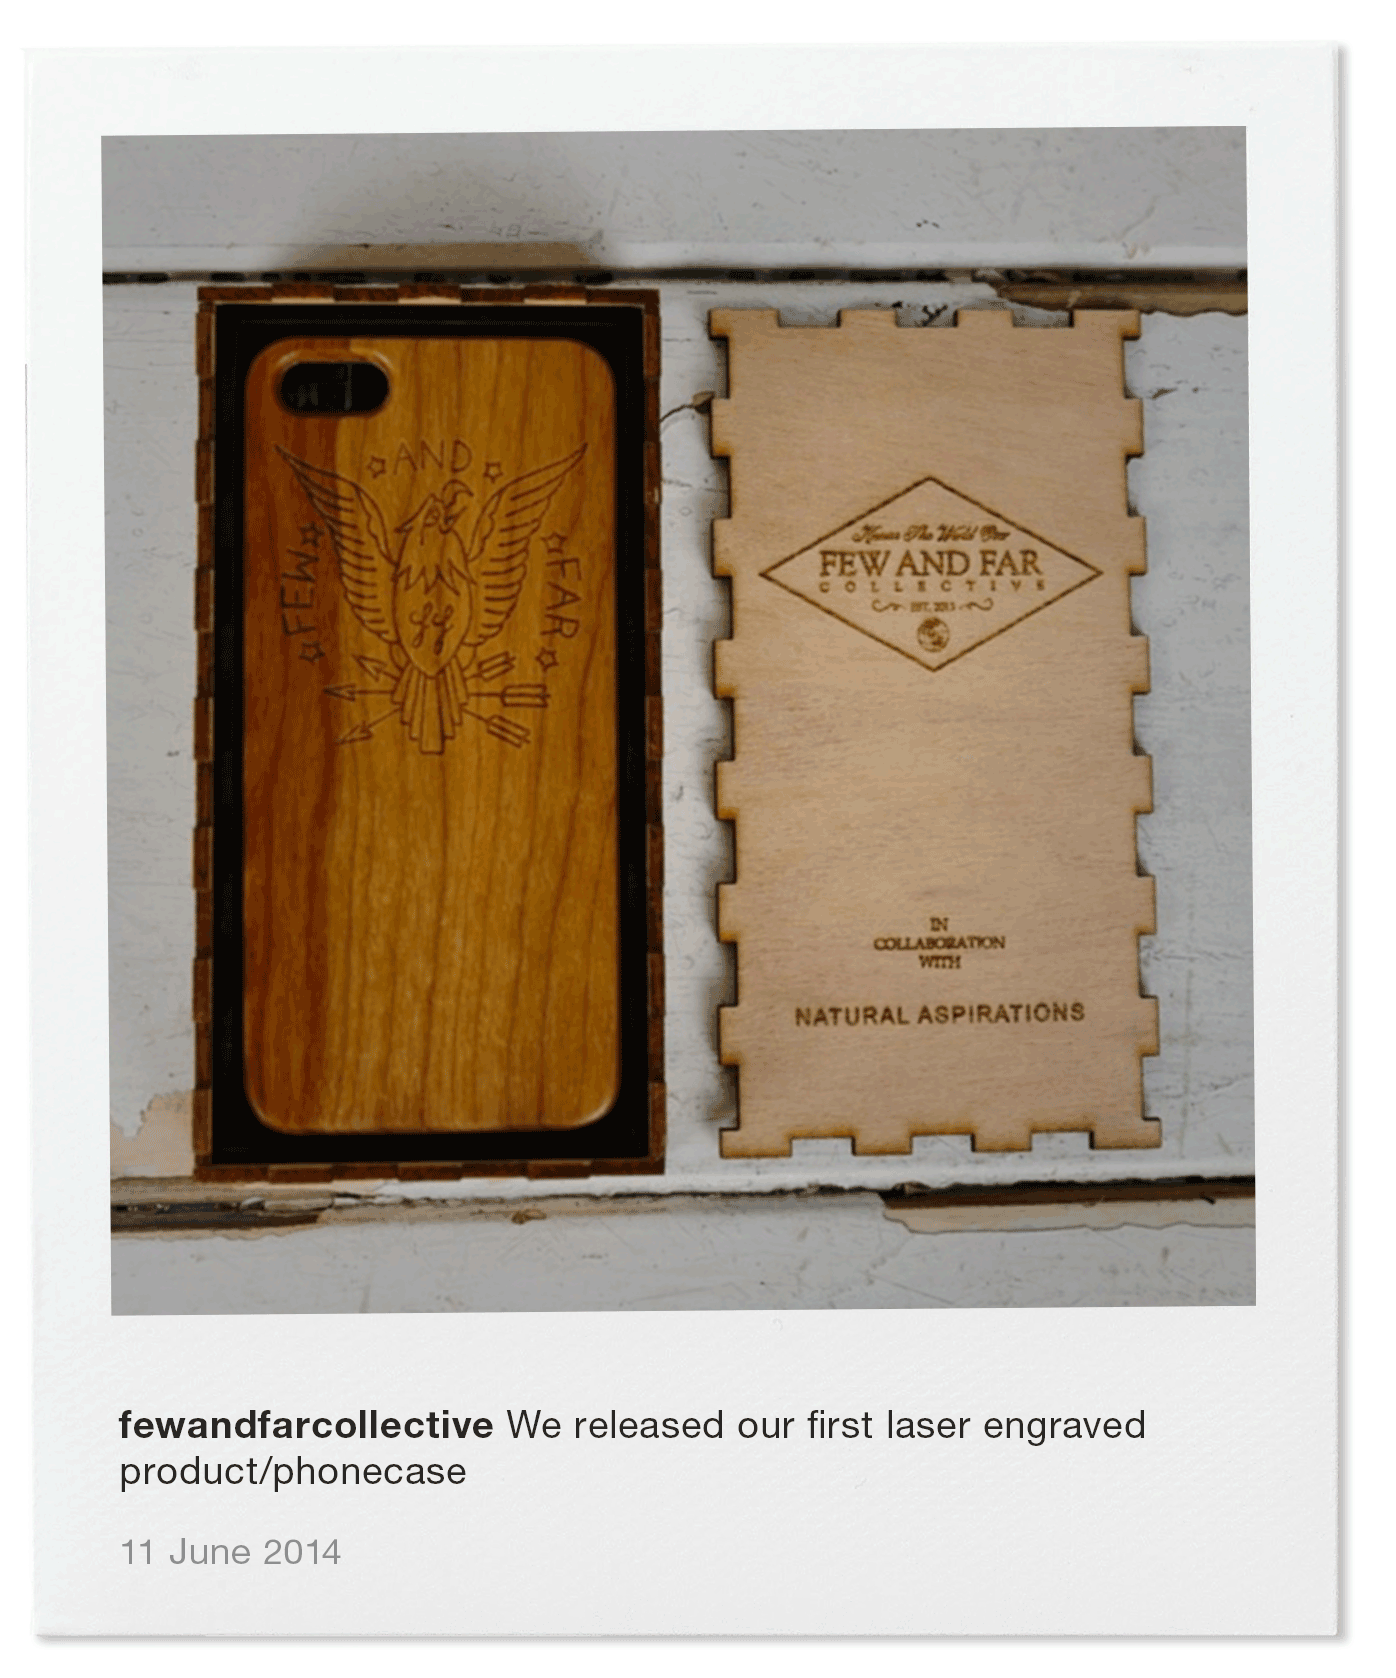 We released our first laser engraved product/phonecase